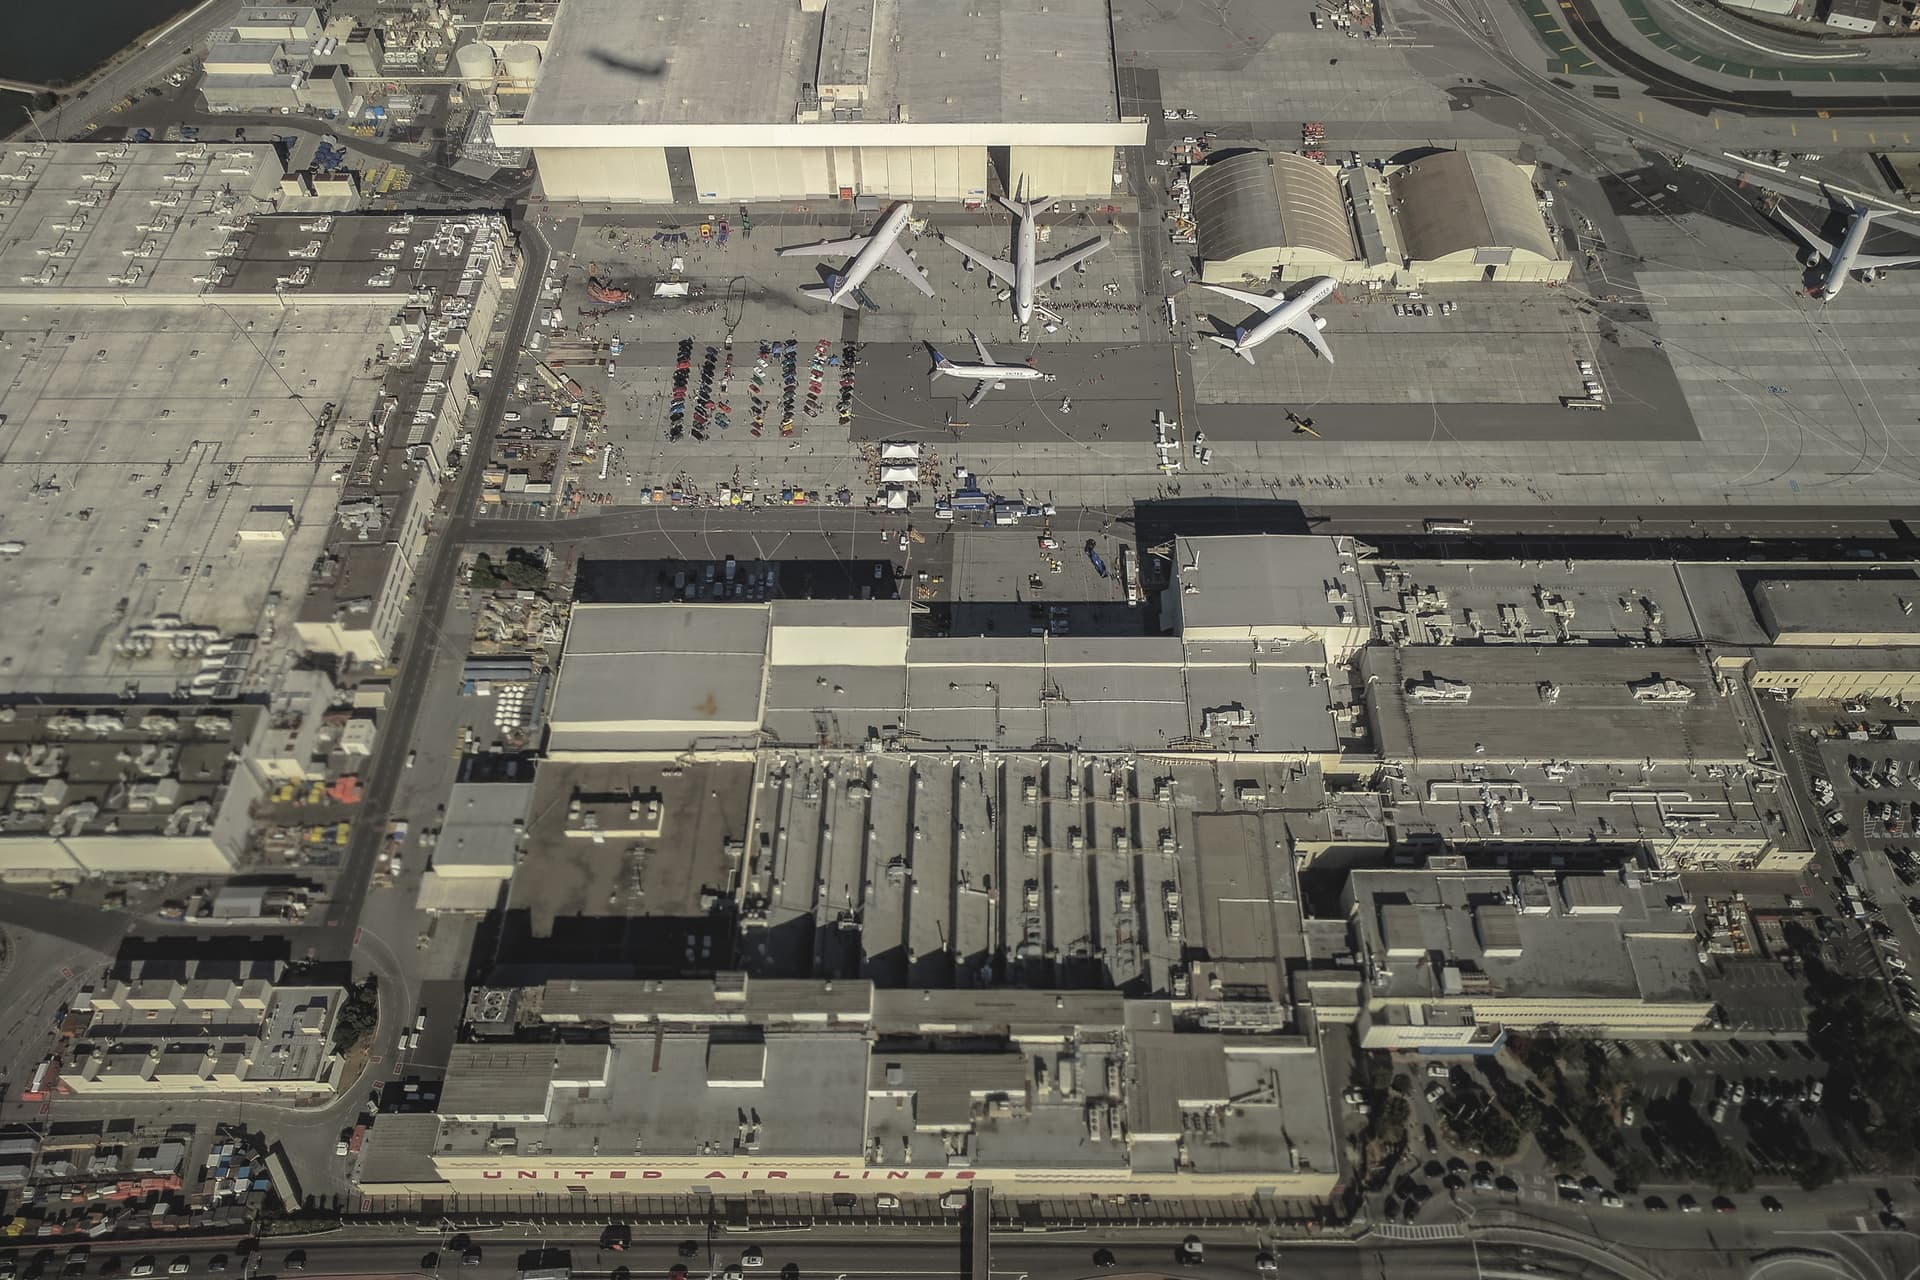 Maintenance hangers and planes at San Francisco International Airport as seen from the air.